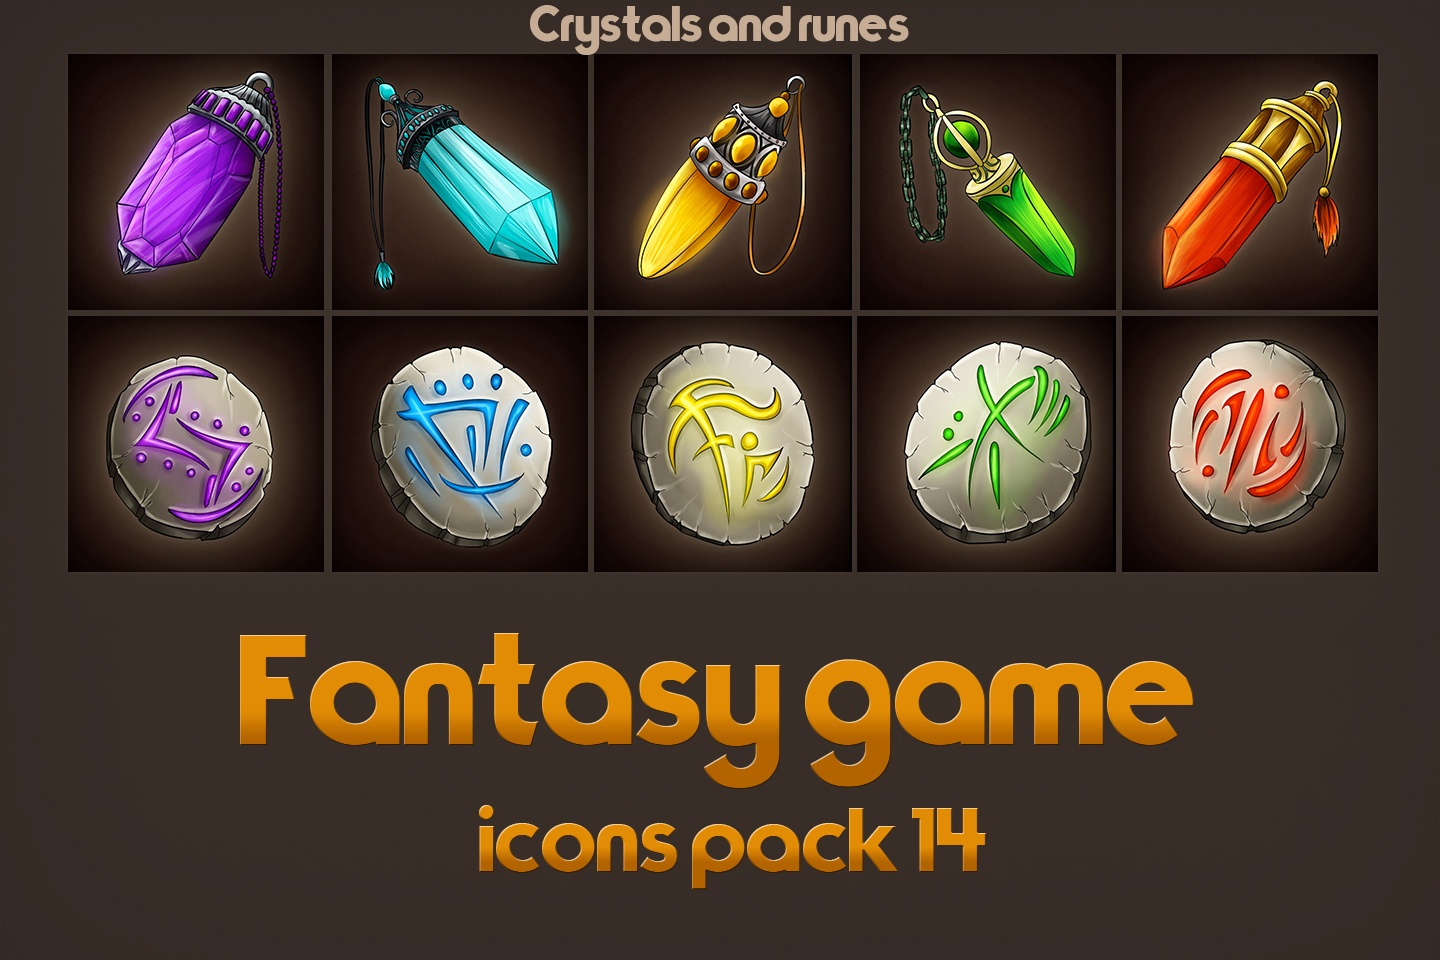 Game Icons of Fantasy Runes and Crystals – Pack 14